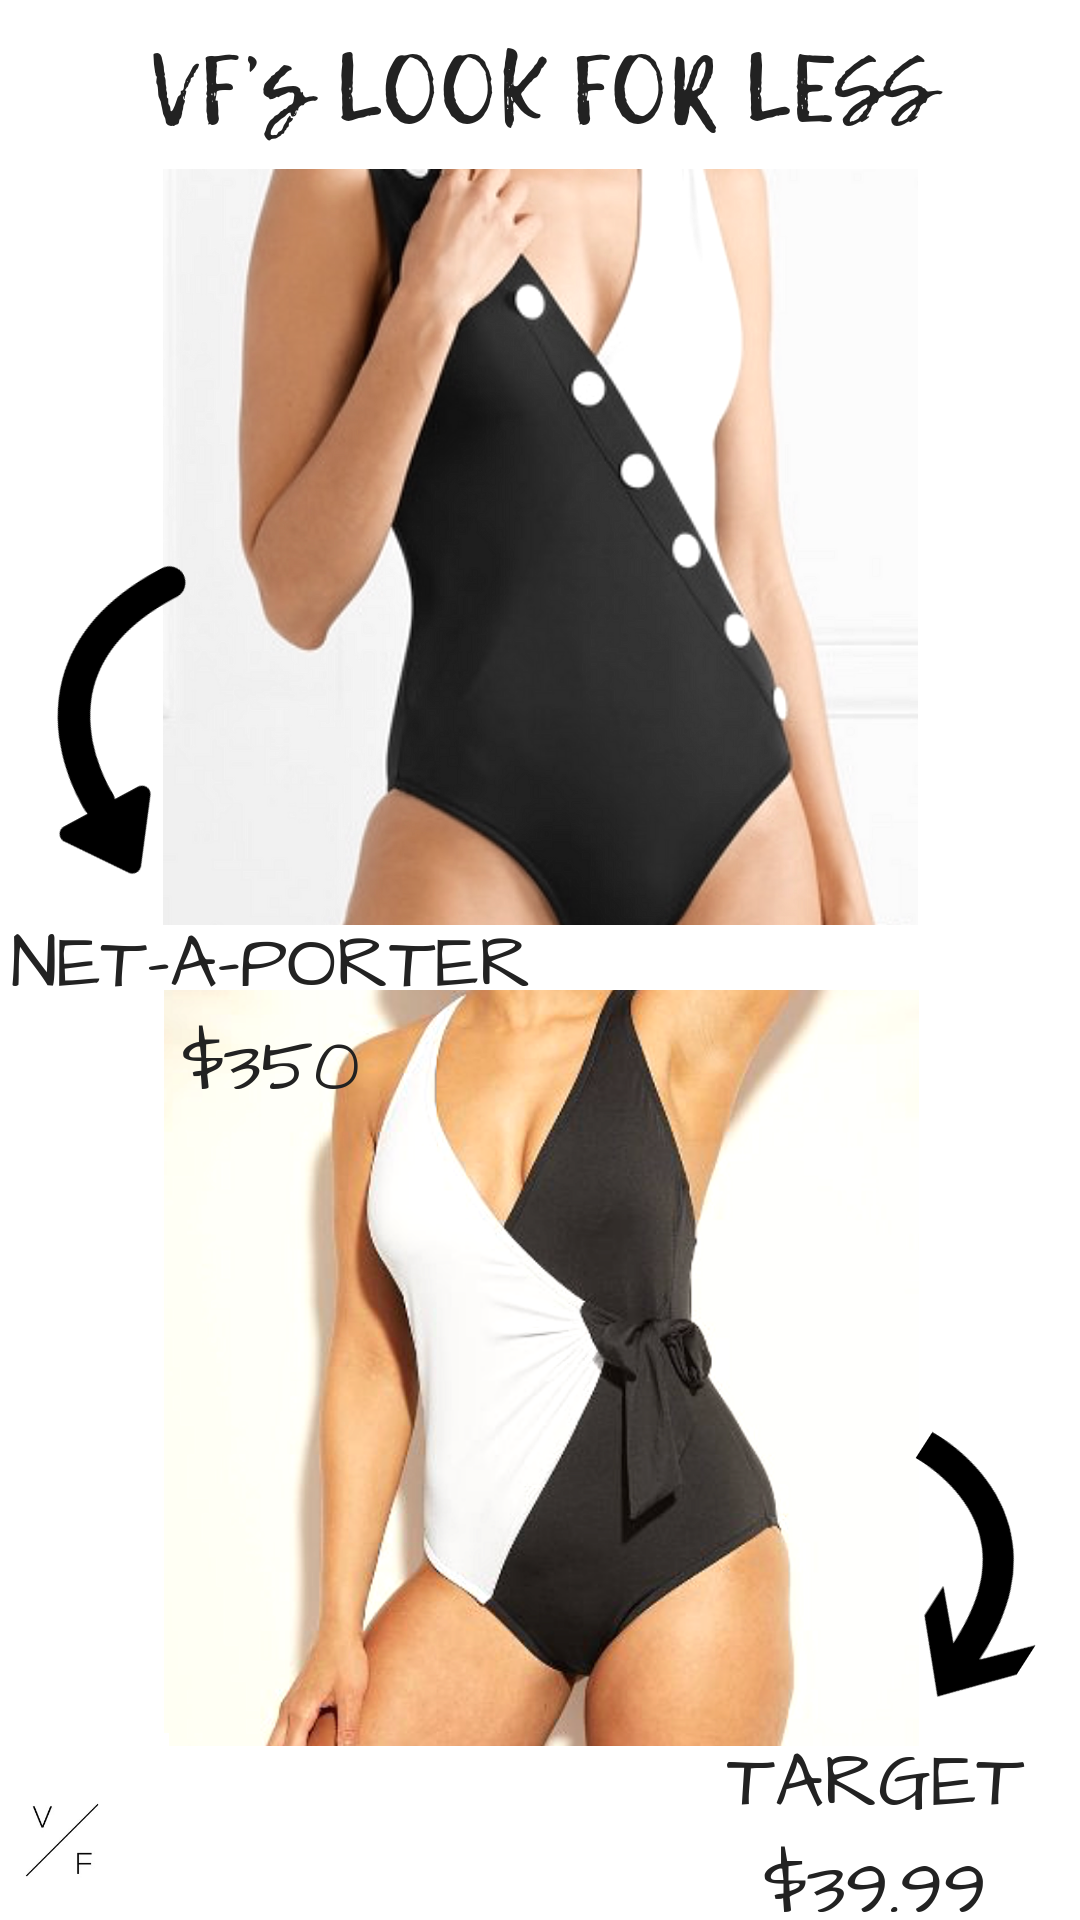 LOOK : https://www.net-a-porter.com/us/en/product/1180784   FOR LESS:  https://www.target.com/c/one-piece-swimsuits-women-s-clothing/black/-/N-5xtbuZ5y761?type=products&facetRecovery=true&lnk=BlackOnePieceSw&Nao=96